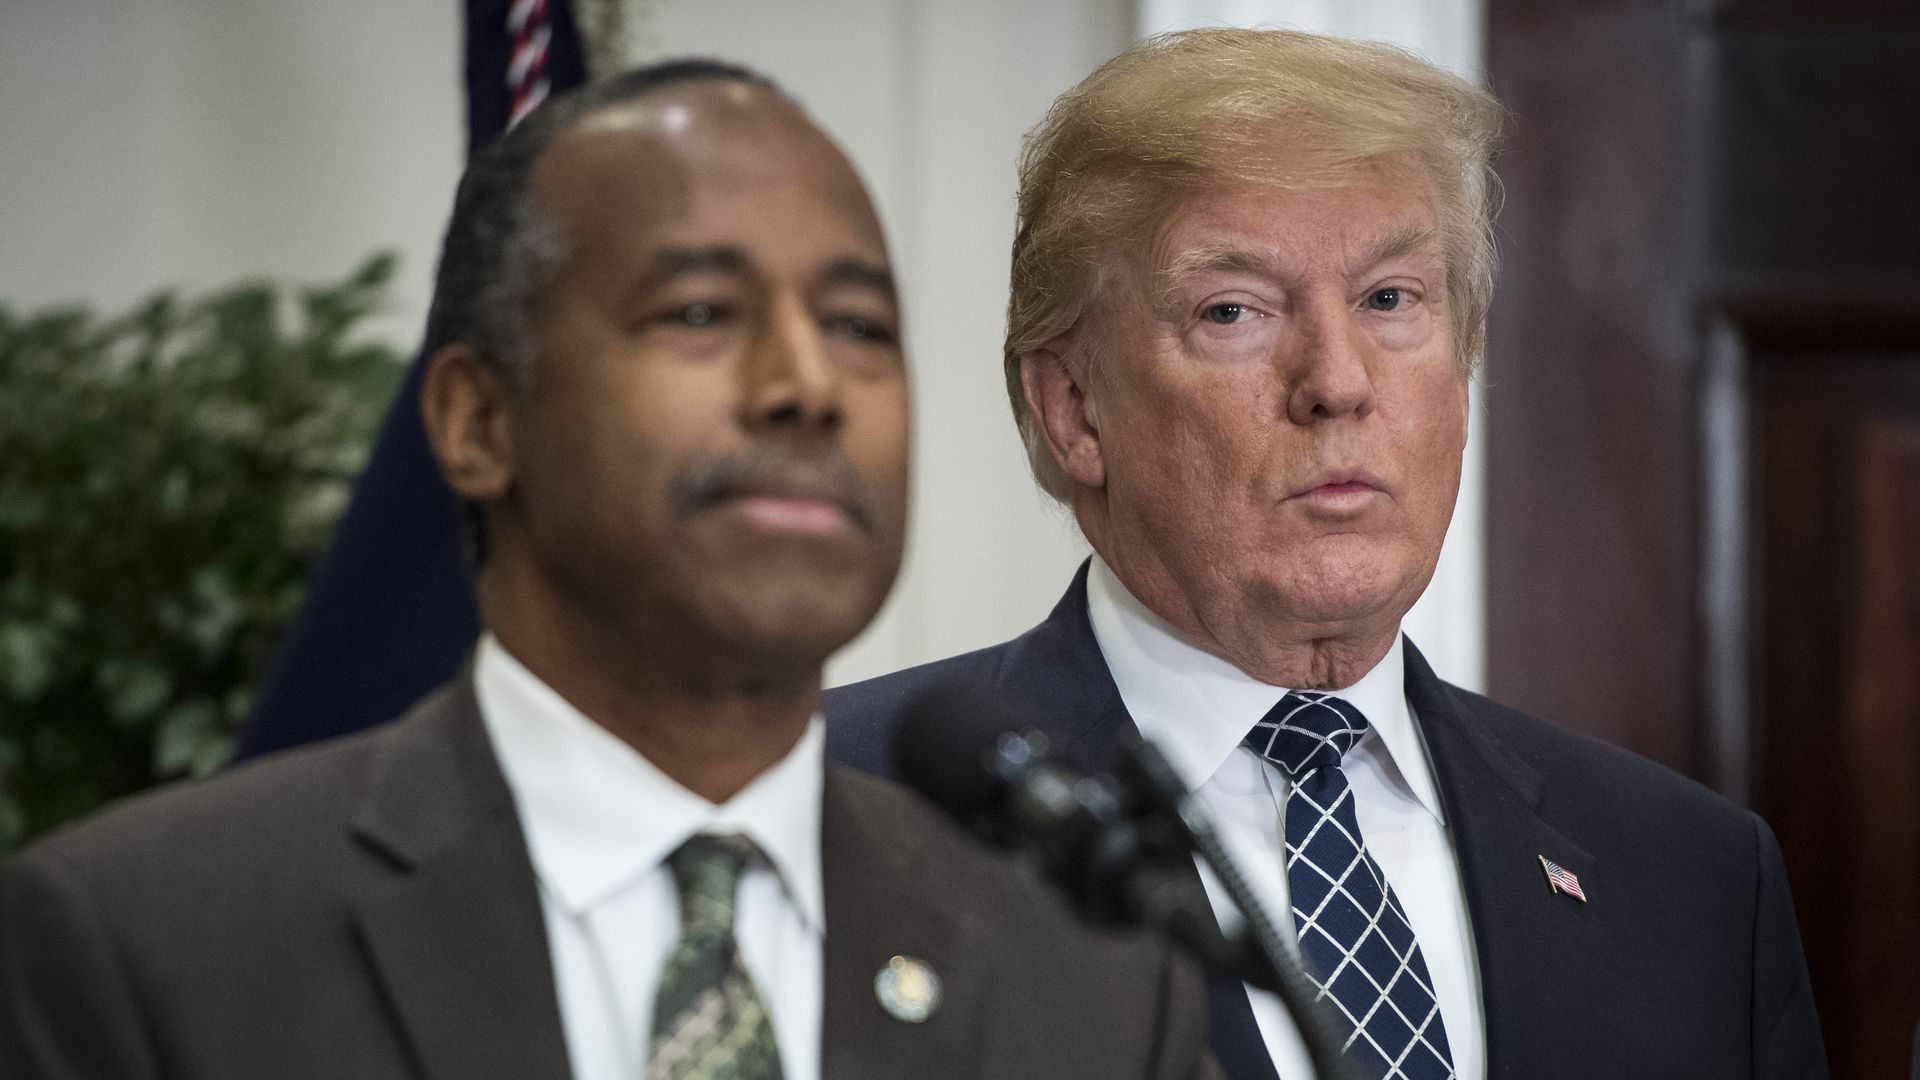 President Trump and Ben Carson